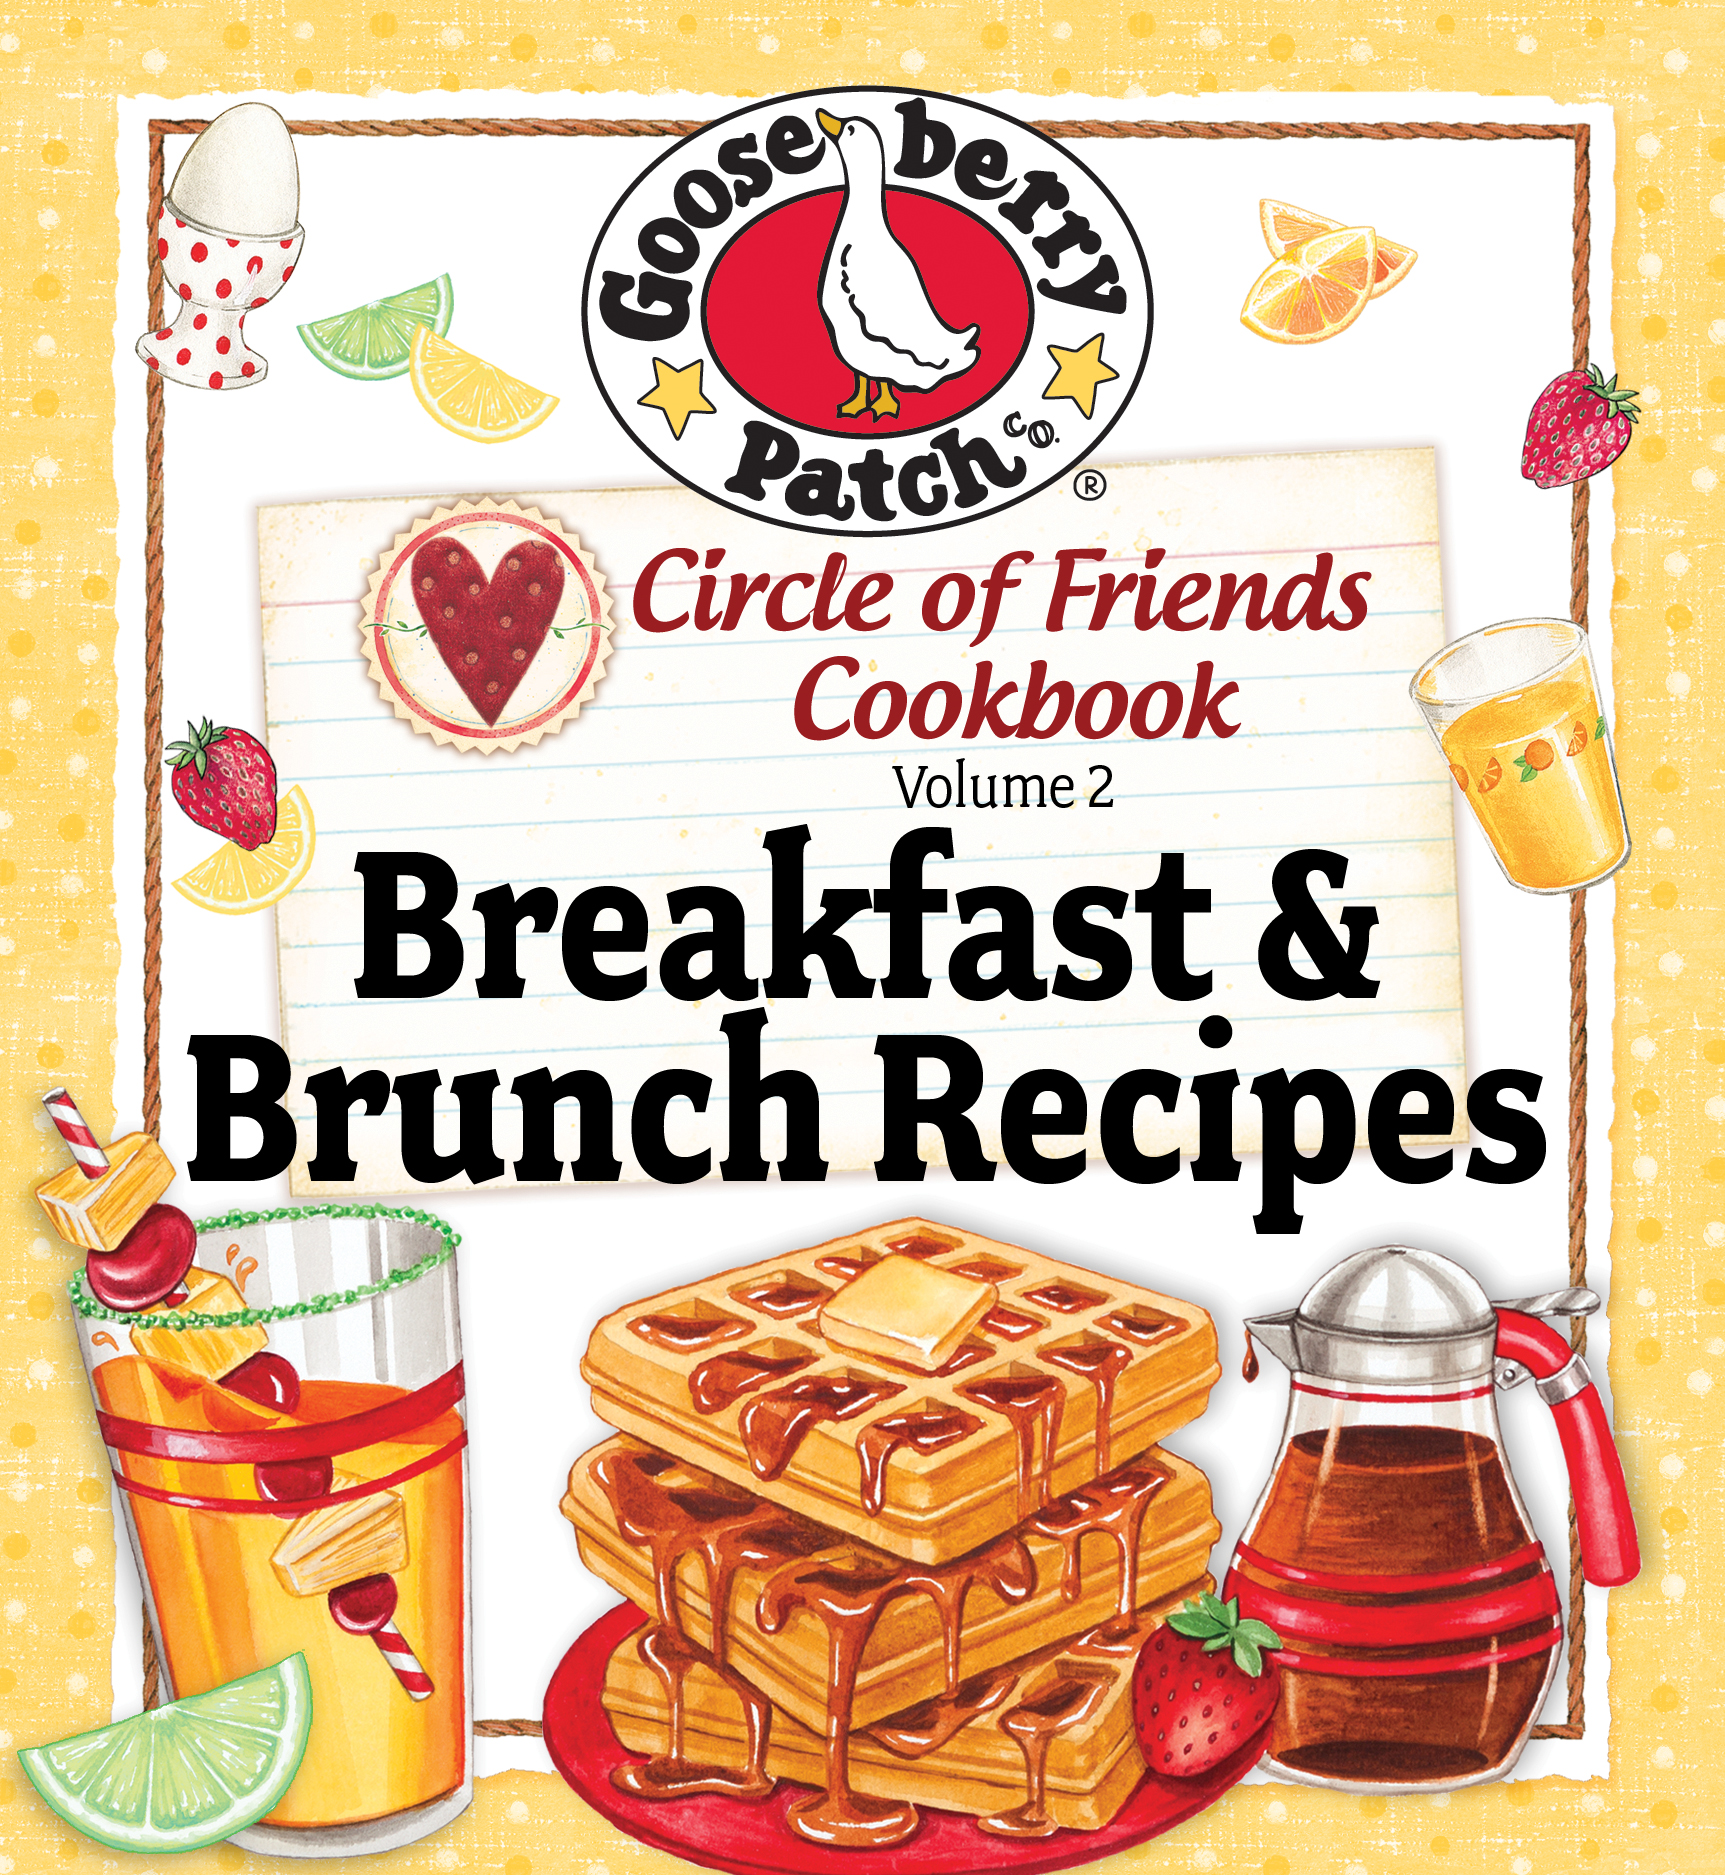 Circle Of Friends 25 Breakfast & Brunch Recipes By: Gooseberry Patch